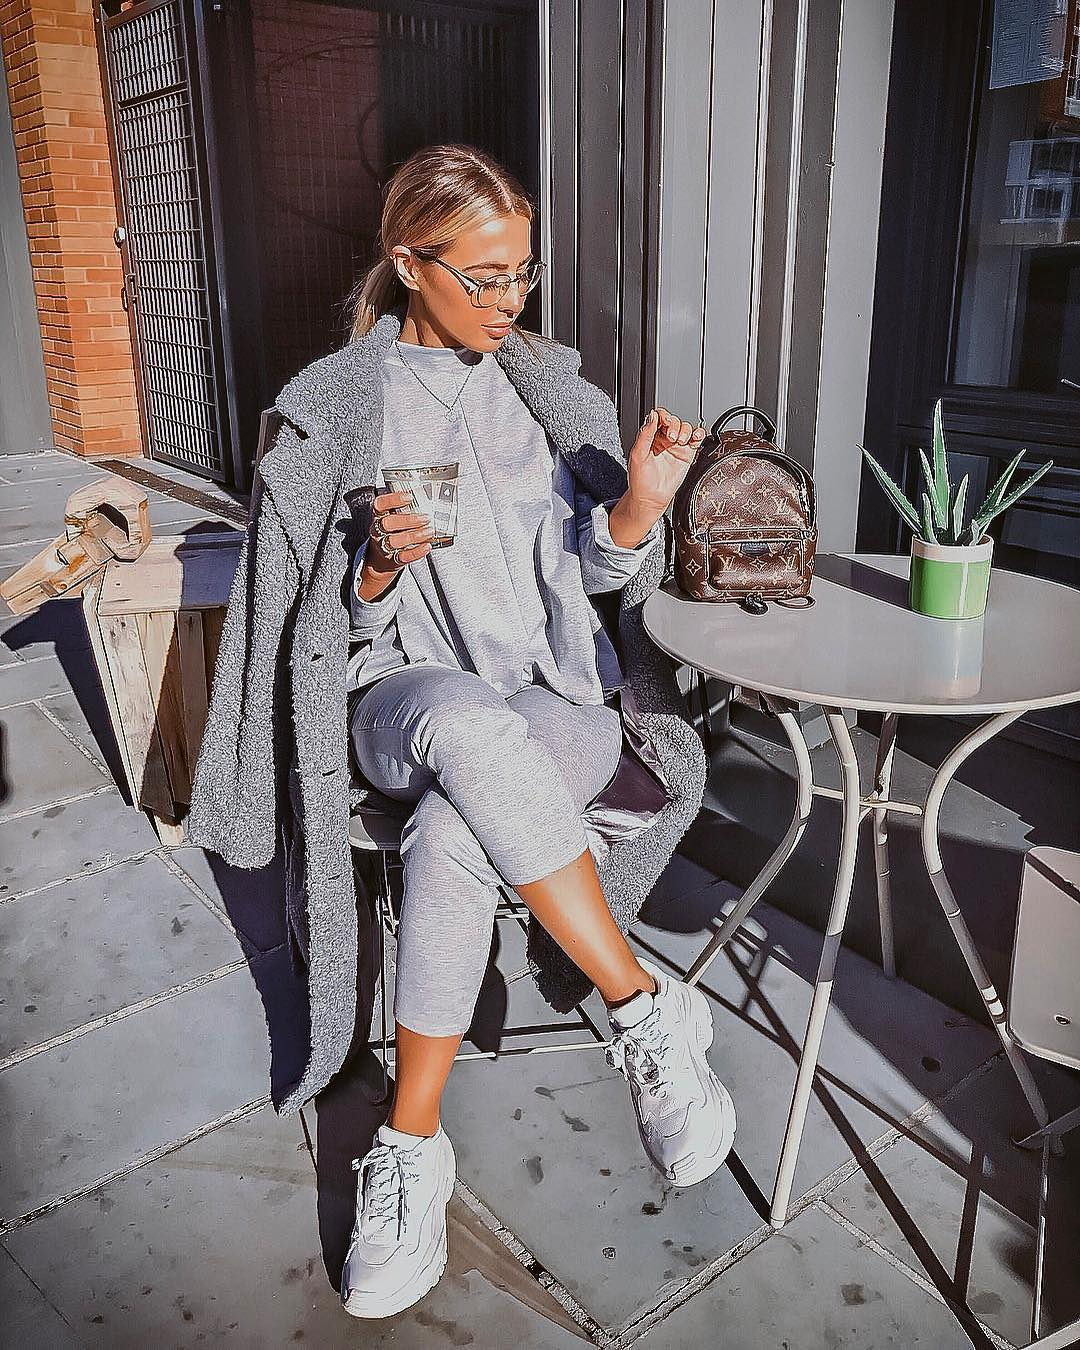 Urban Sporty Essentials: Everything in shades of gray 2021